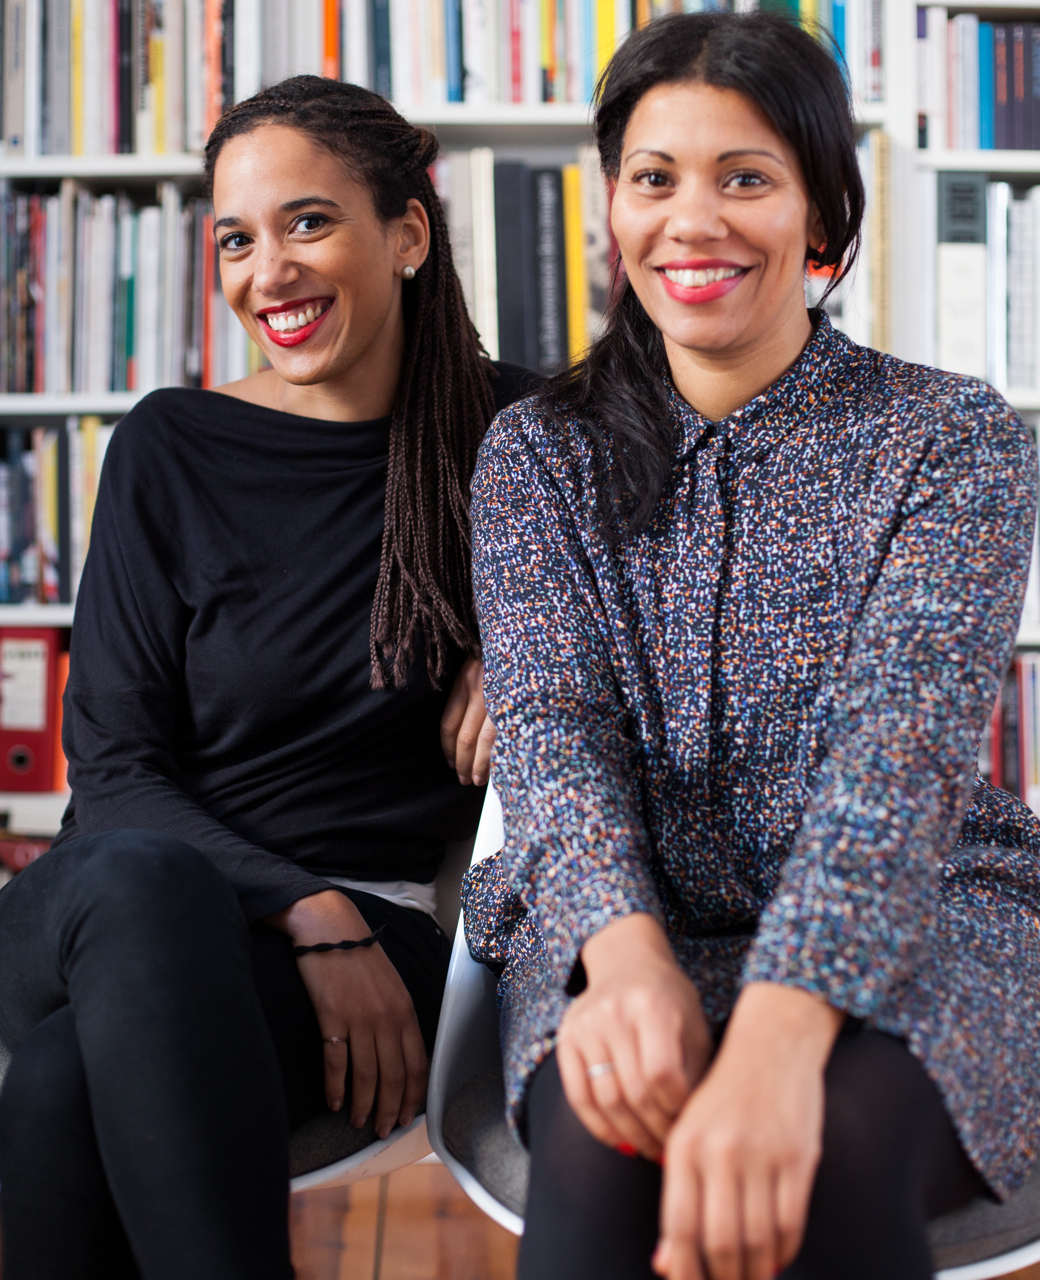 Yvette Mutumba (on left) and Julia Grosse of Contemporary And. Photo by Benjamin Renter, courtesy of the Armory Show.